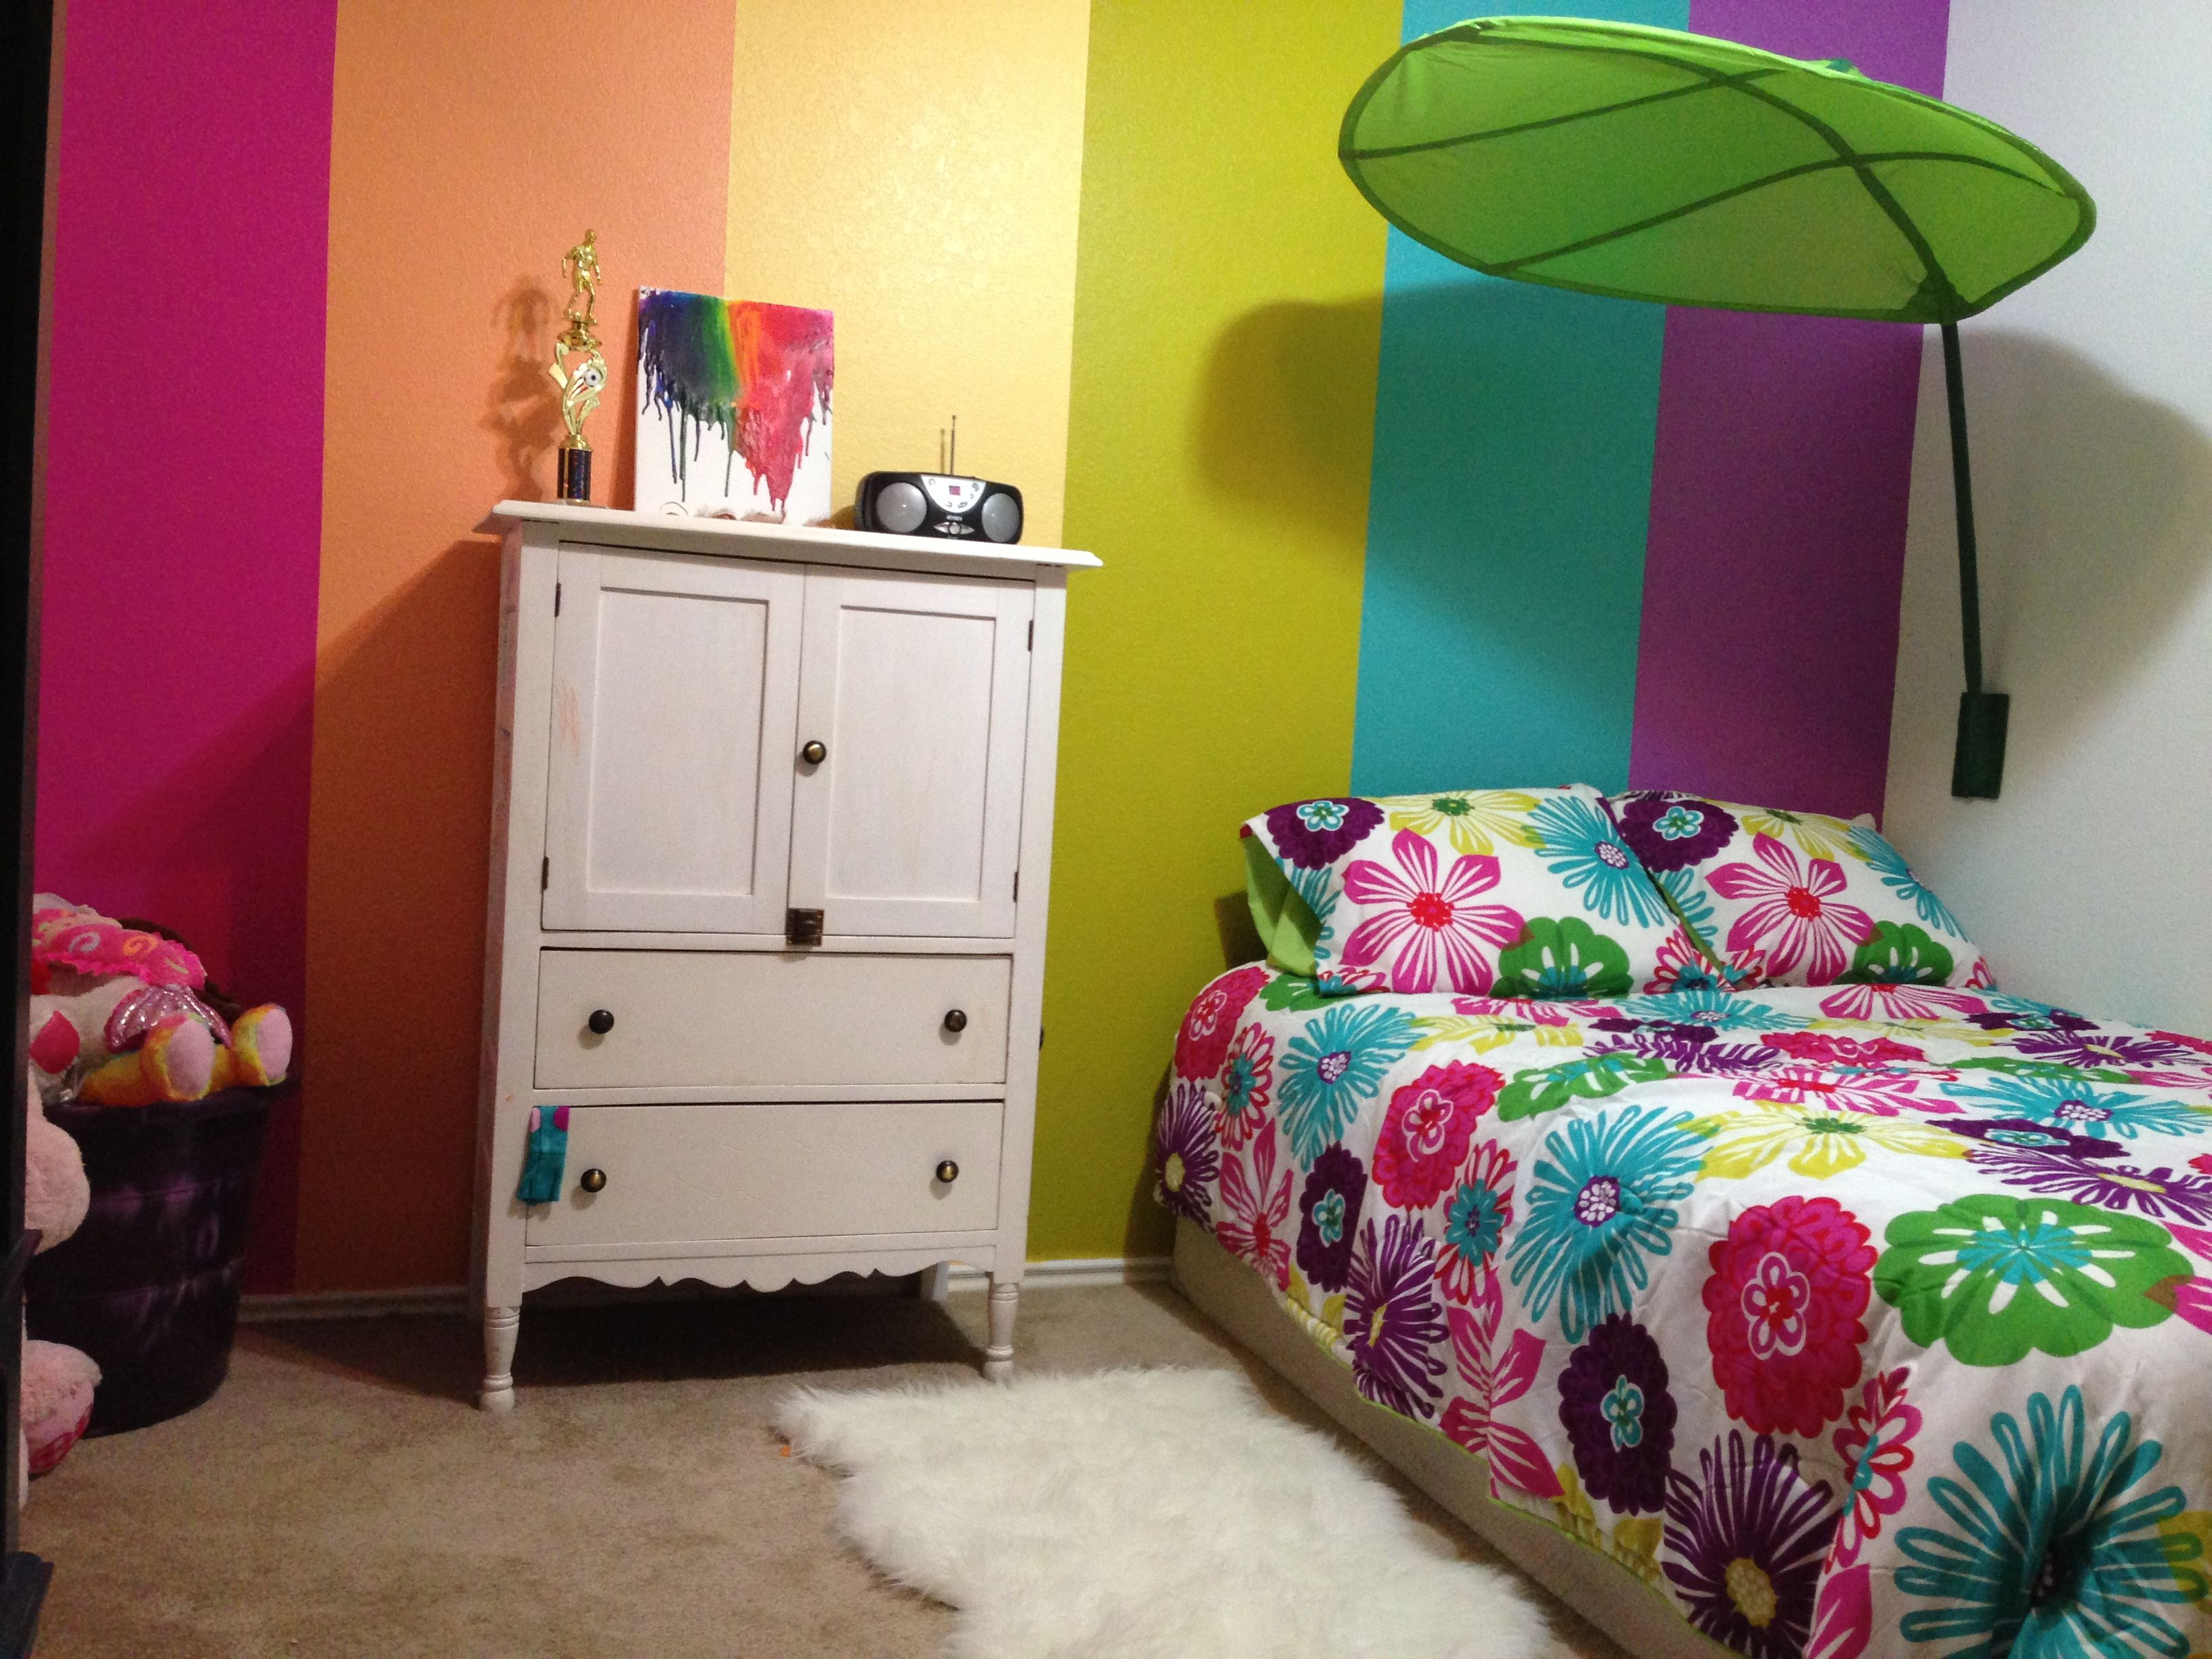 Rainbow Bedroom Ideas My 5 Year Old 39s Rainbow Room Girls Rooms Pinterest